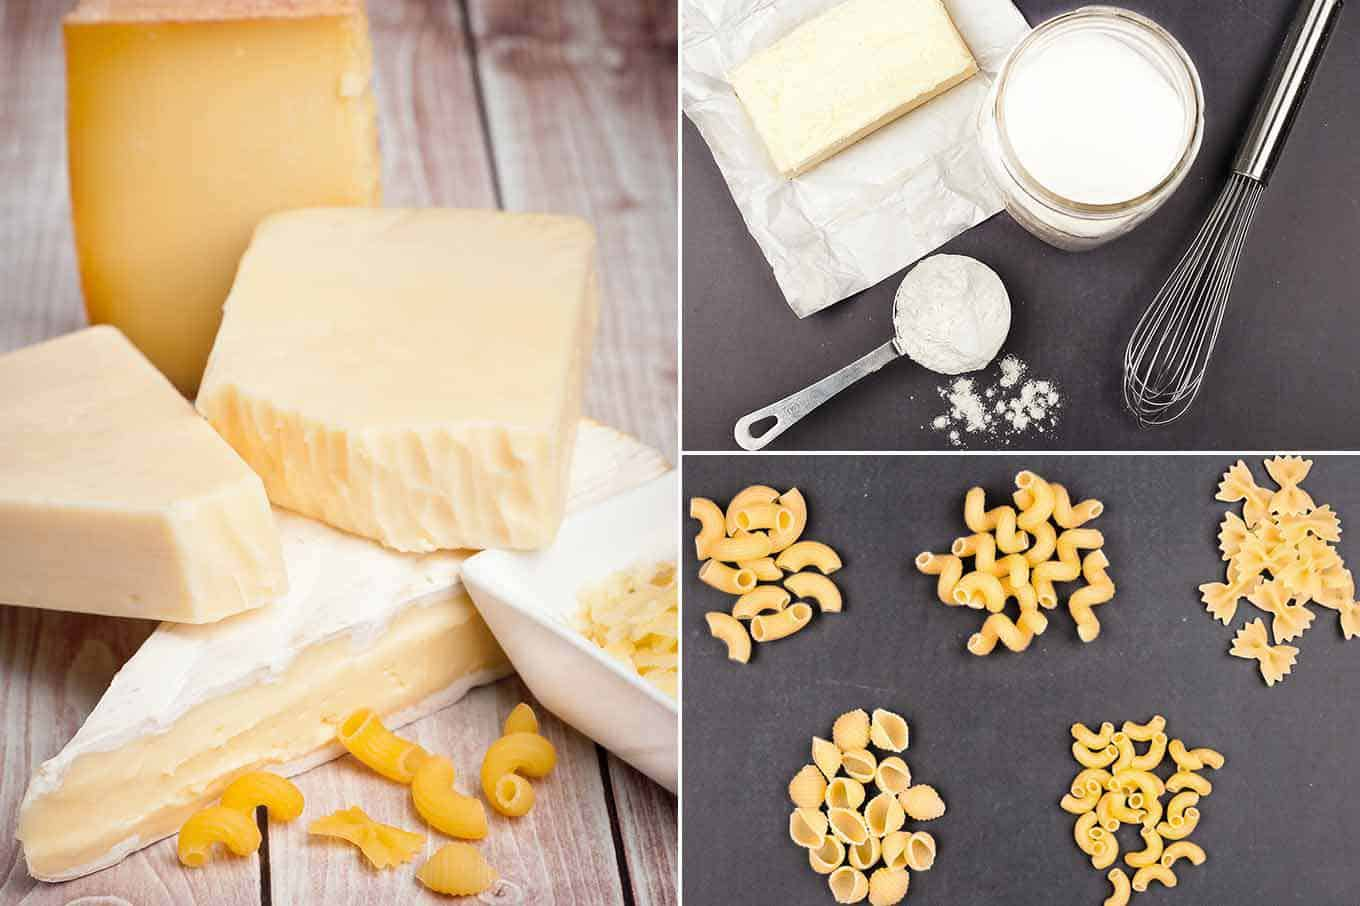 Macaroni and cheese ingredients, blocks of different cheeses, flour, butter, and five cuts of pasta